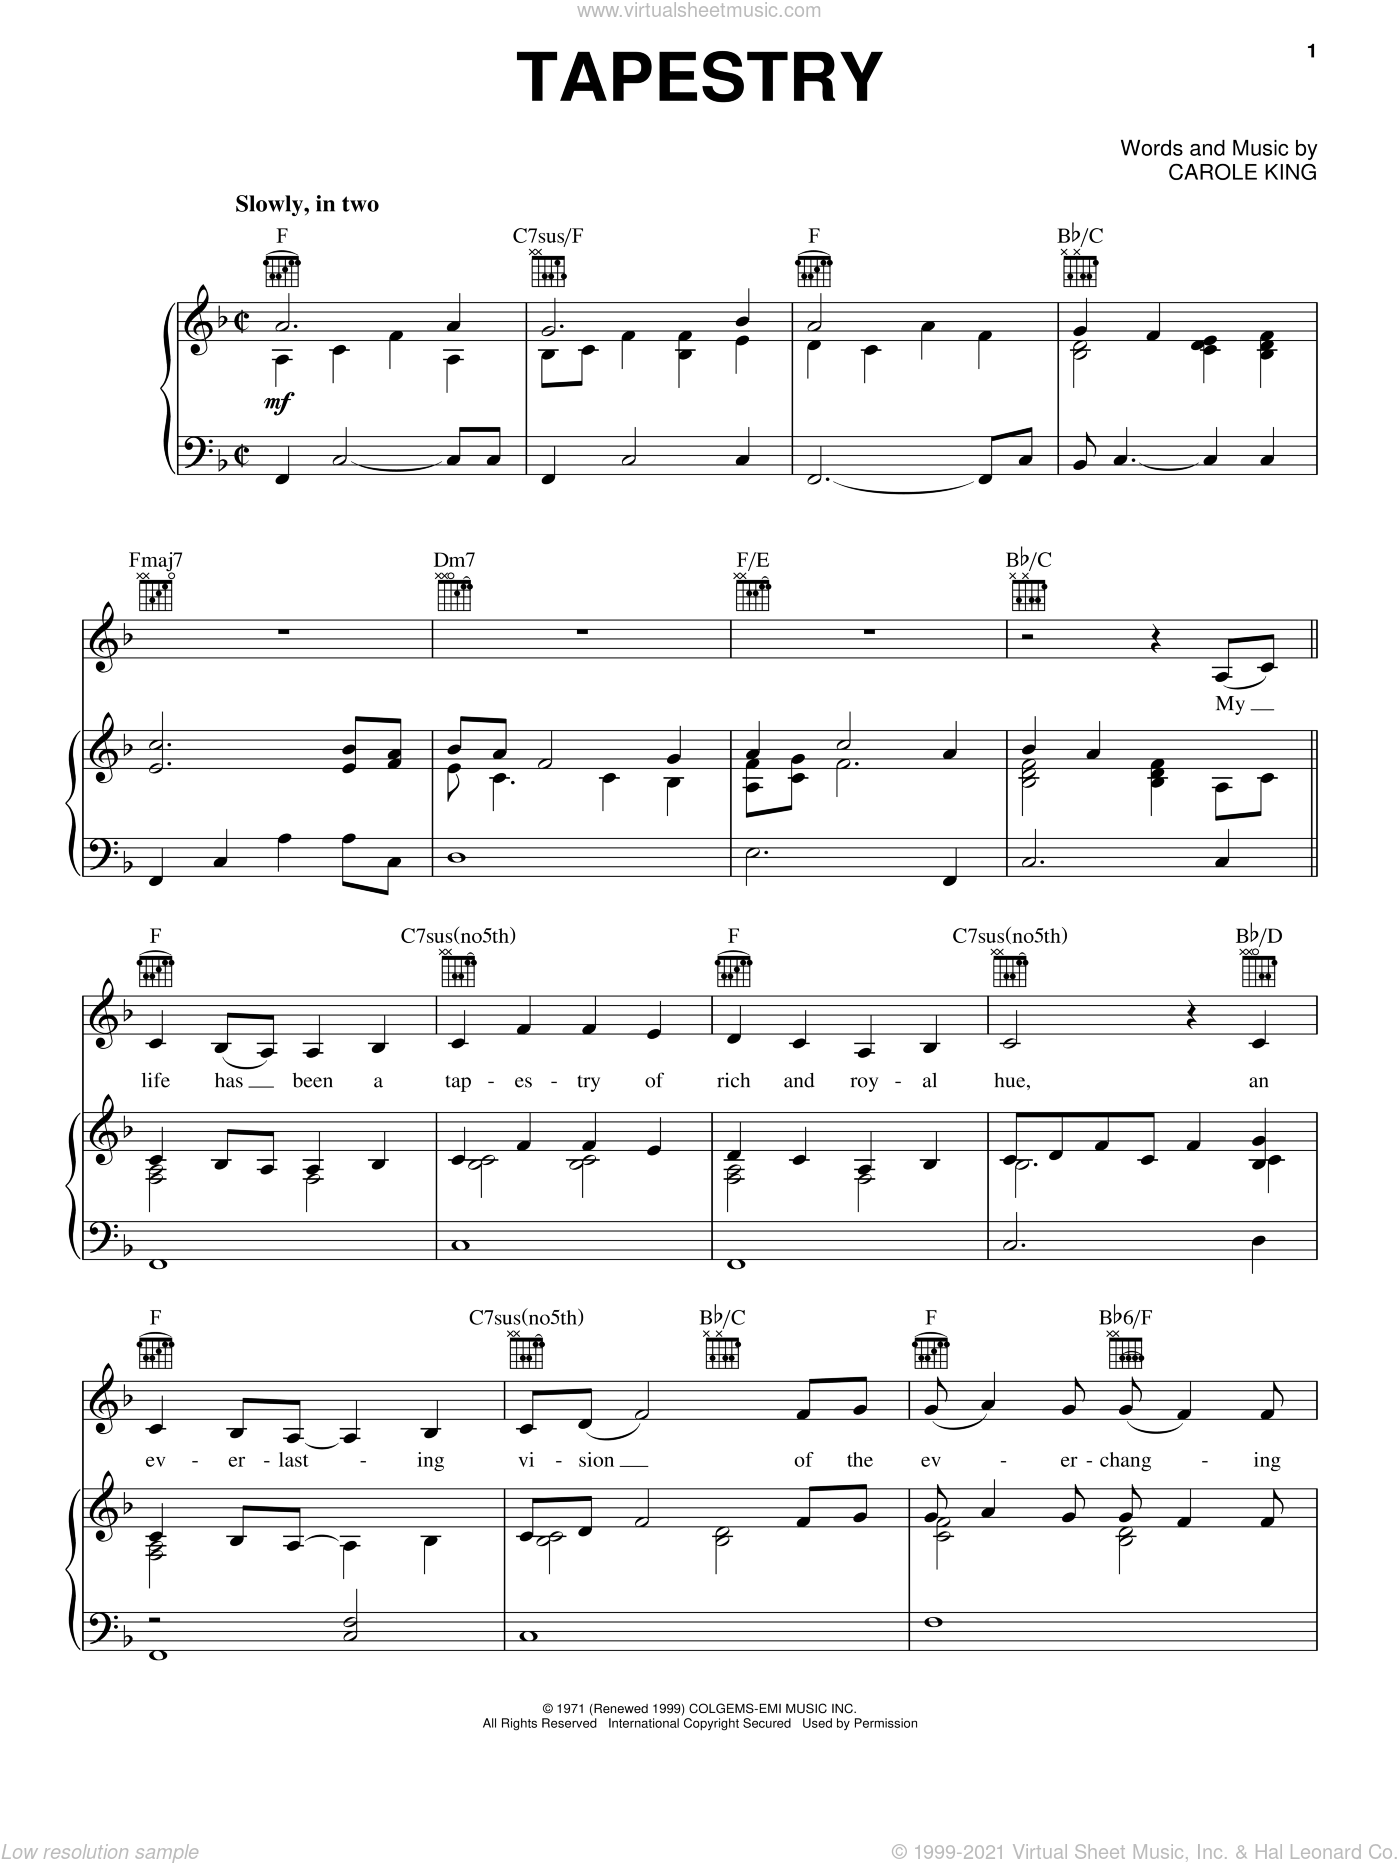 Tapestry sheet music for voice, piano or guitar by Carole King, intermediate skill level